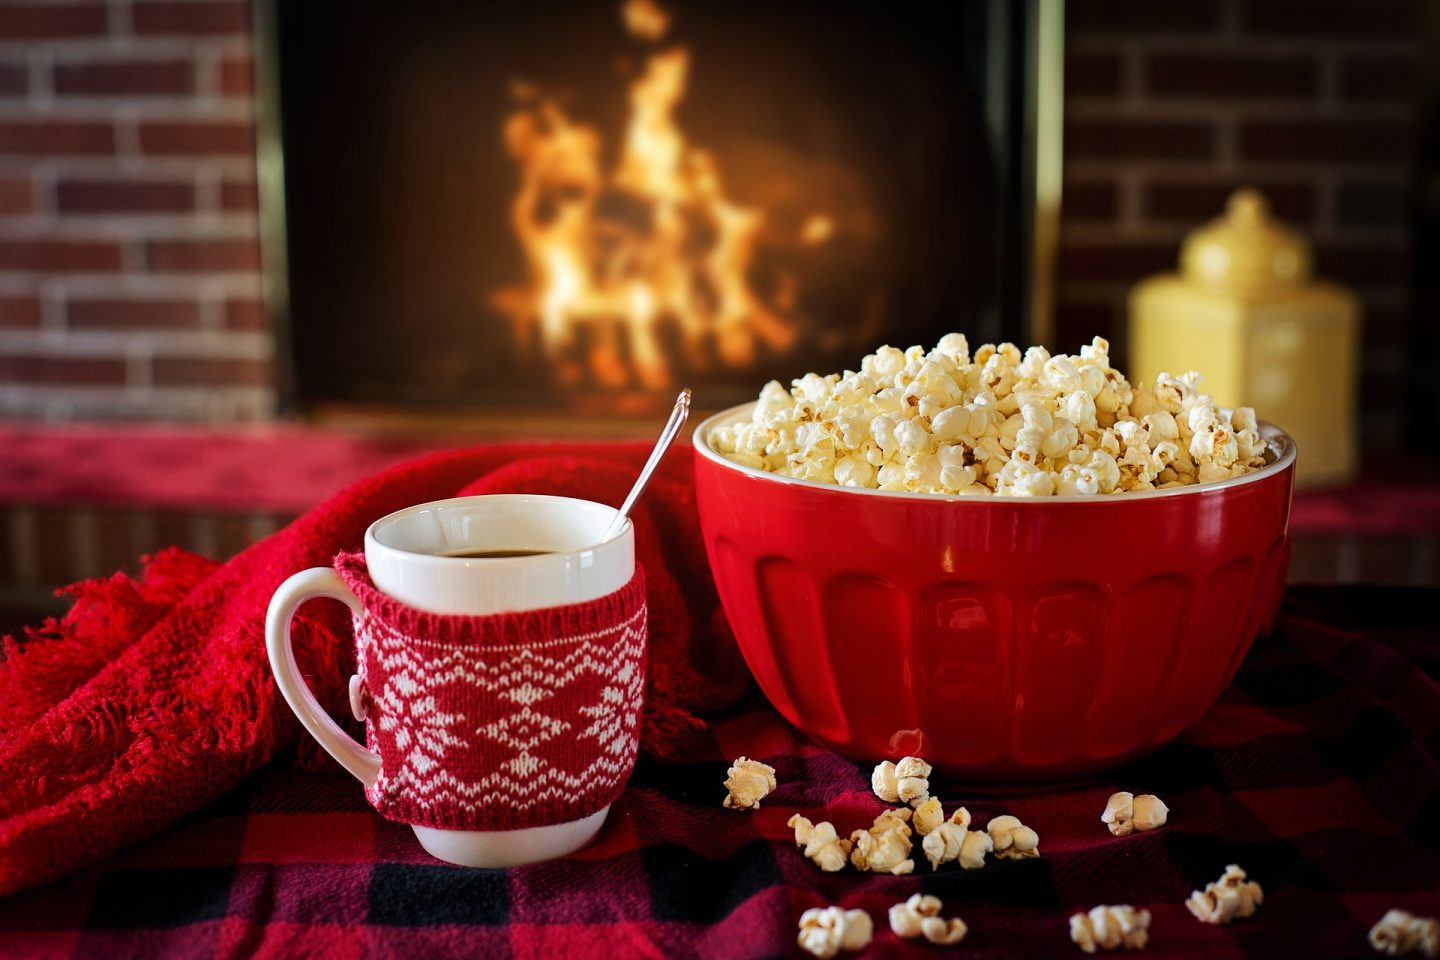 A white mug with a red and white knitted cover on it, next to a large red bowl full of popcorn with a large fire in the background